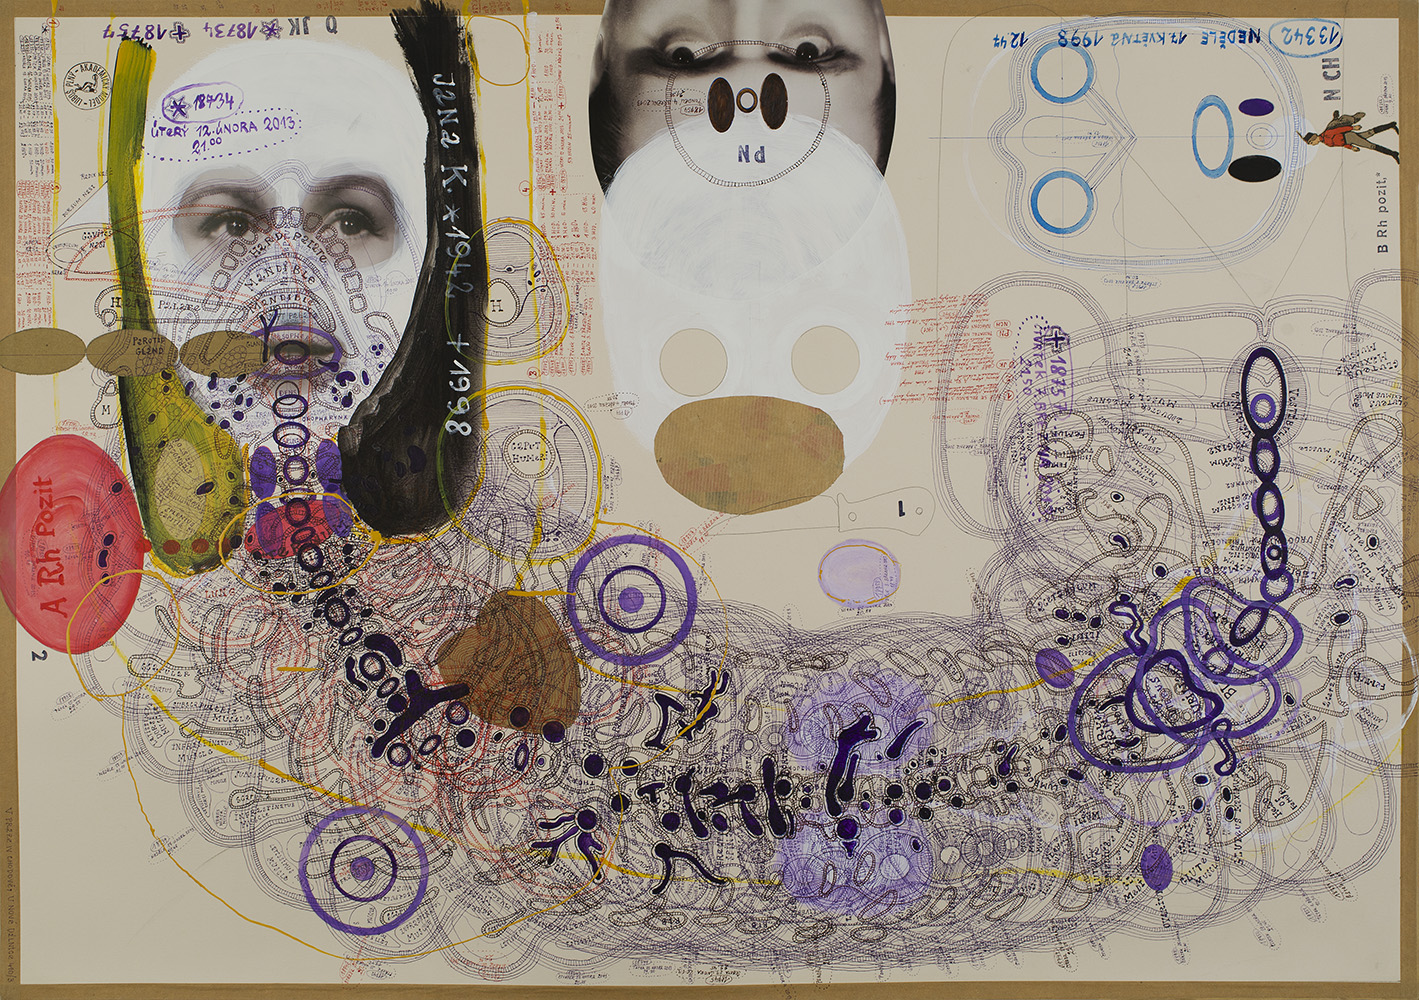 Luboš Plný,   Untitled  , 2013,Ink, acrylic, mixed media on paper,23.5 x 33 inches,59.7 x 83.8 cm,LuP 58